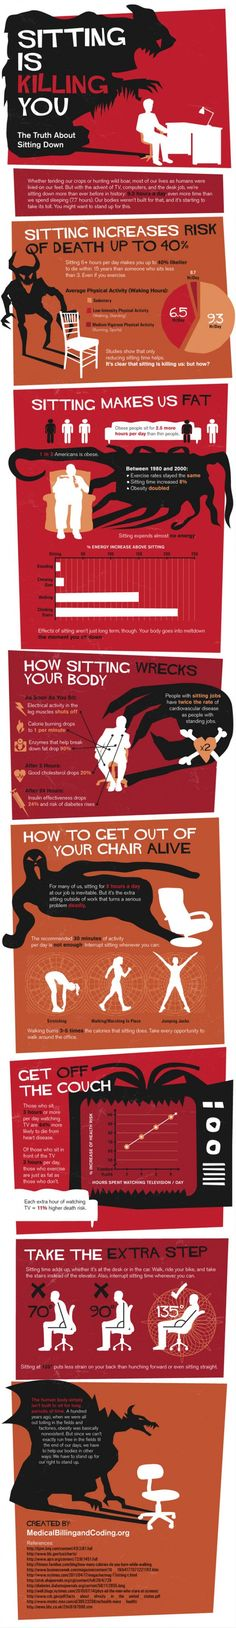 Sitting too long is unhealthy! #sitting